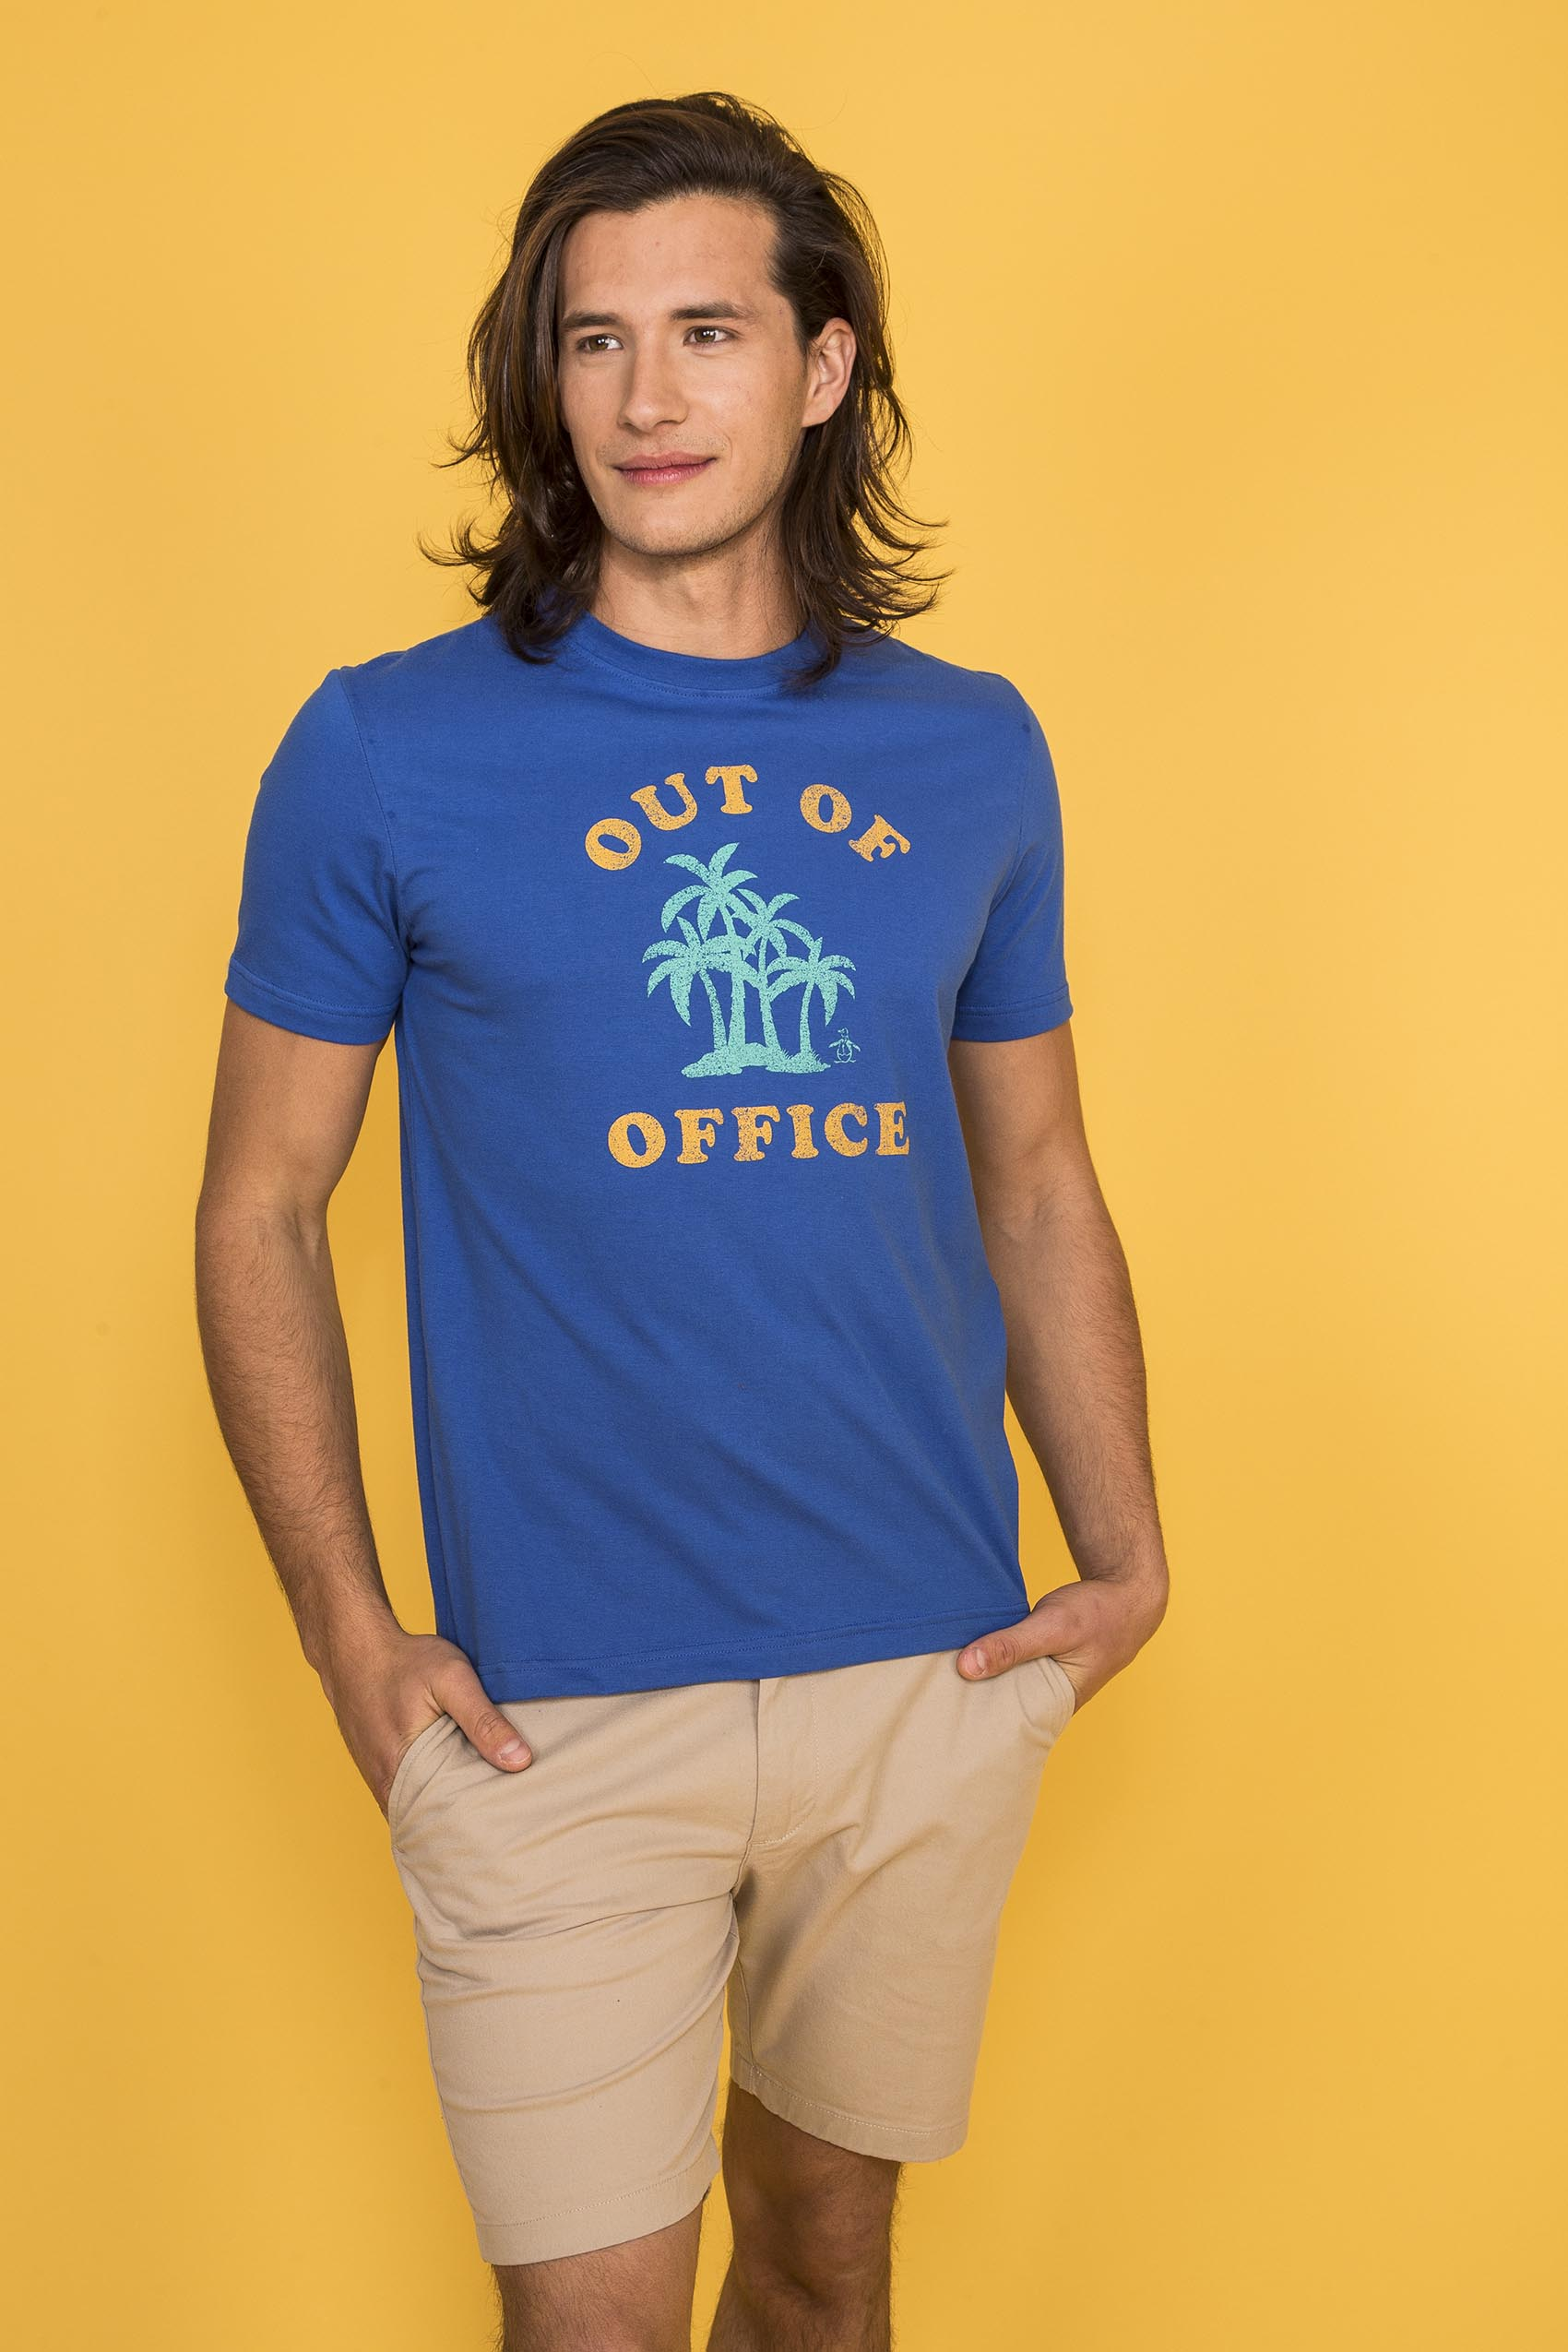 penguin_ss-out-of-office-tee_34-25-2020__picture-16624